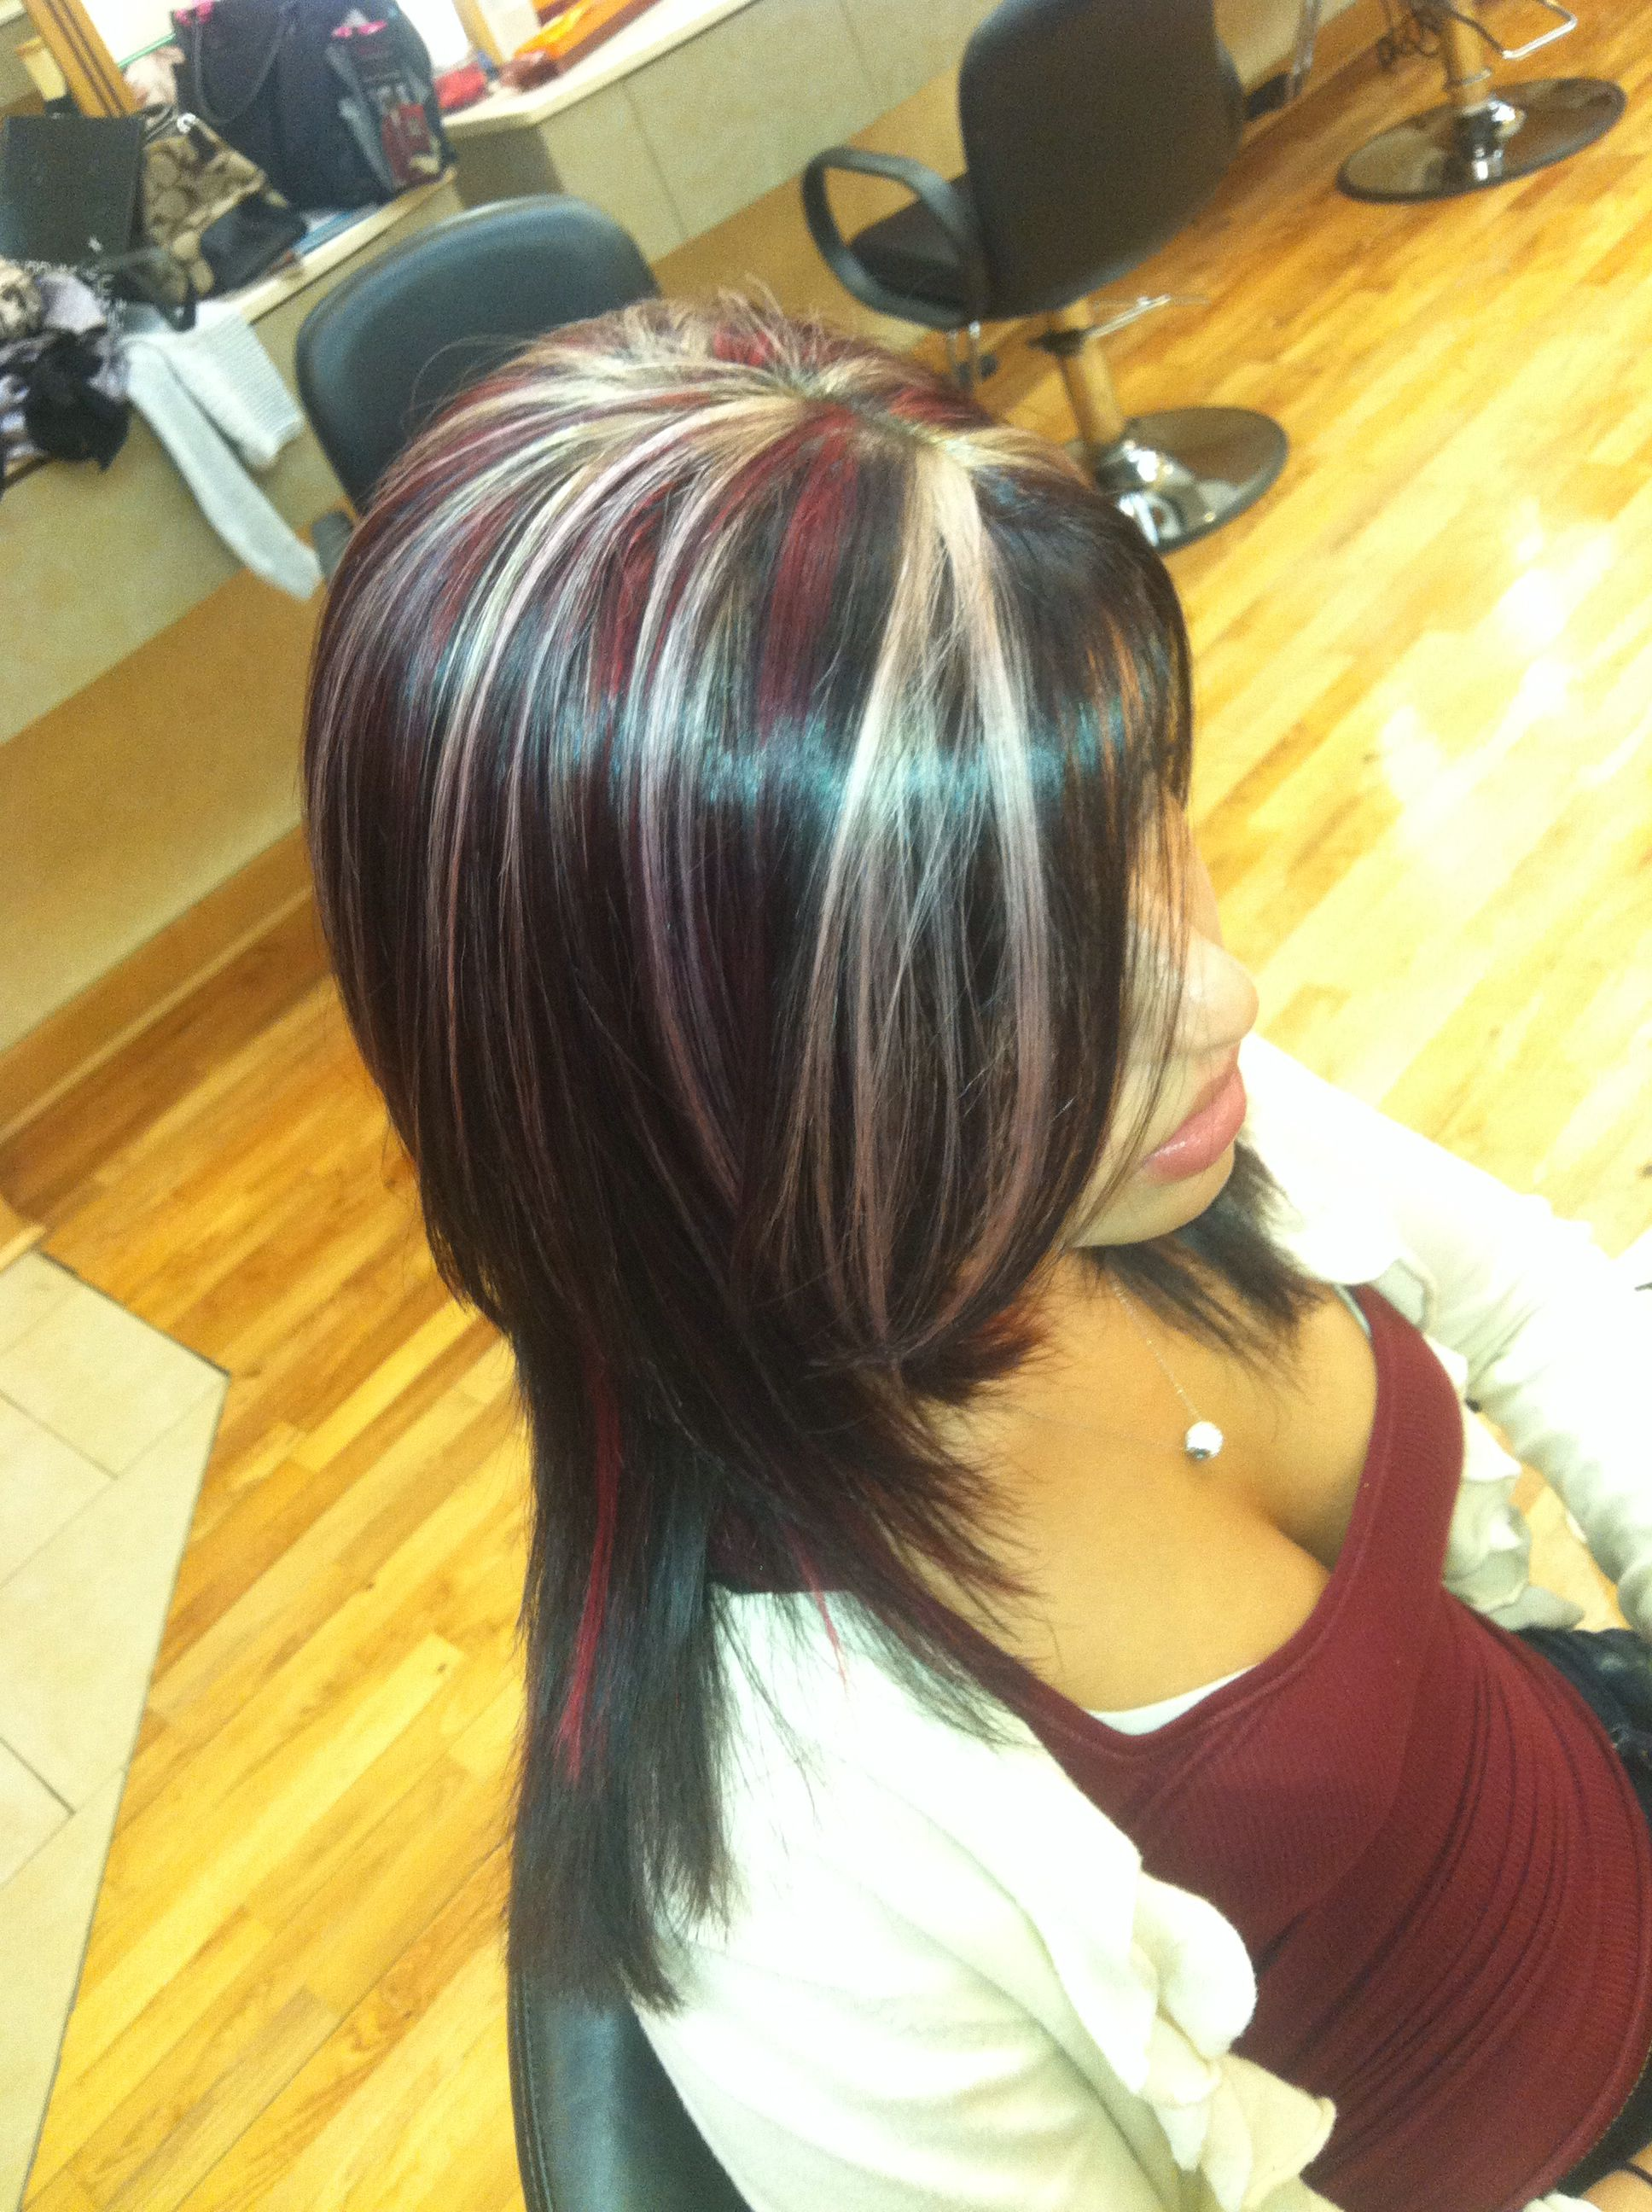 Pink Purple Blonde Highlighted Hair Haiirbymare: Pink Purple Blonde Highlighted Hair #haiirbymare